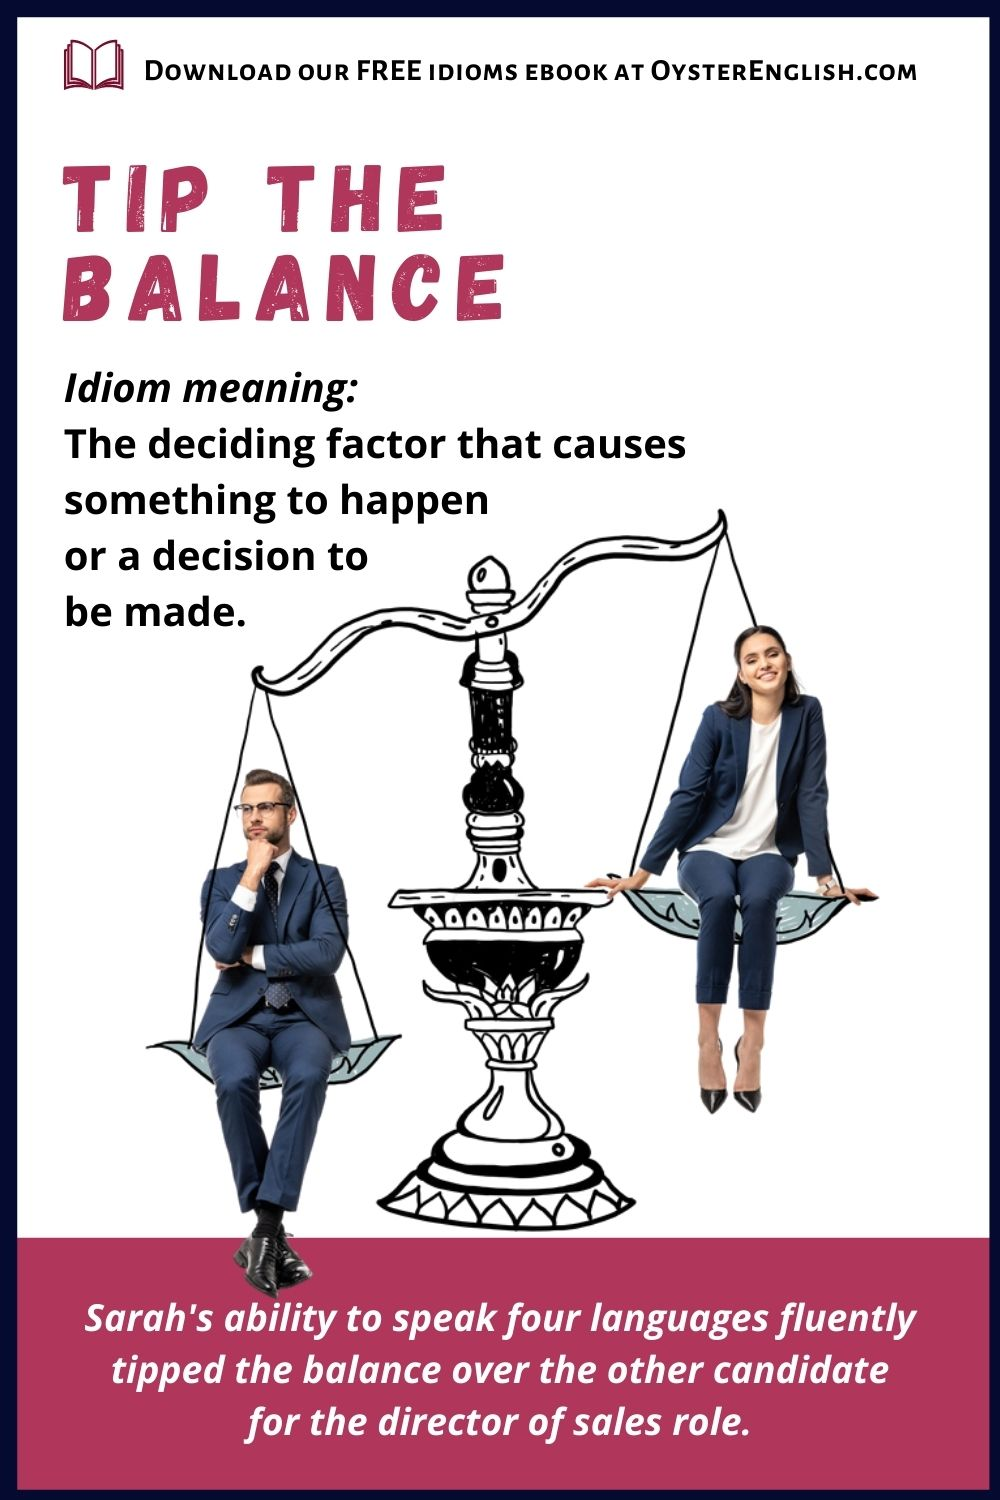 A businessman & businesswoman sit in the pans of a balance scale, with the woman at a higher level.